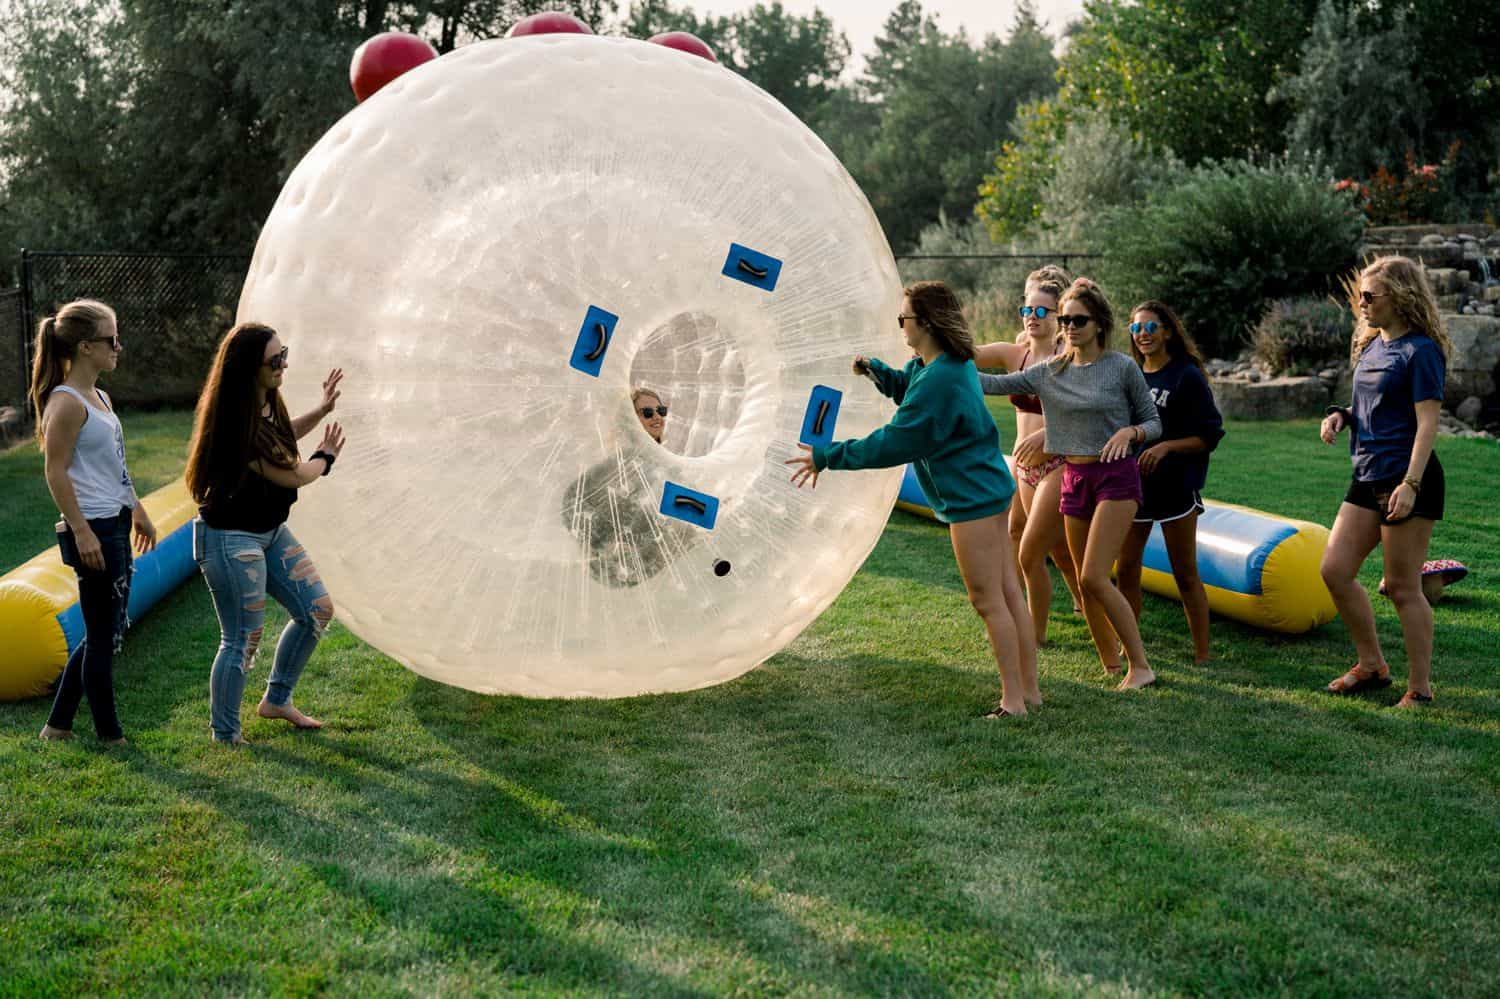 A group of senior girls play with a gigantic hamster ball in a newly-cut field of grass